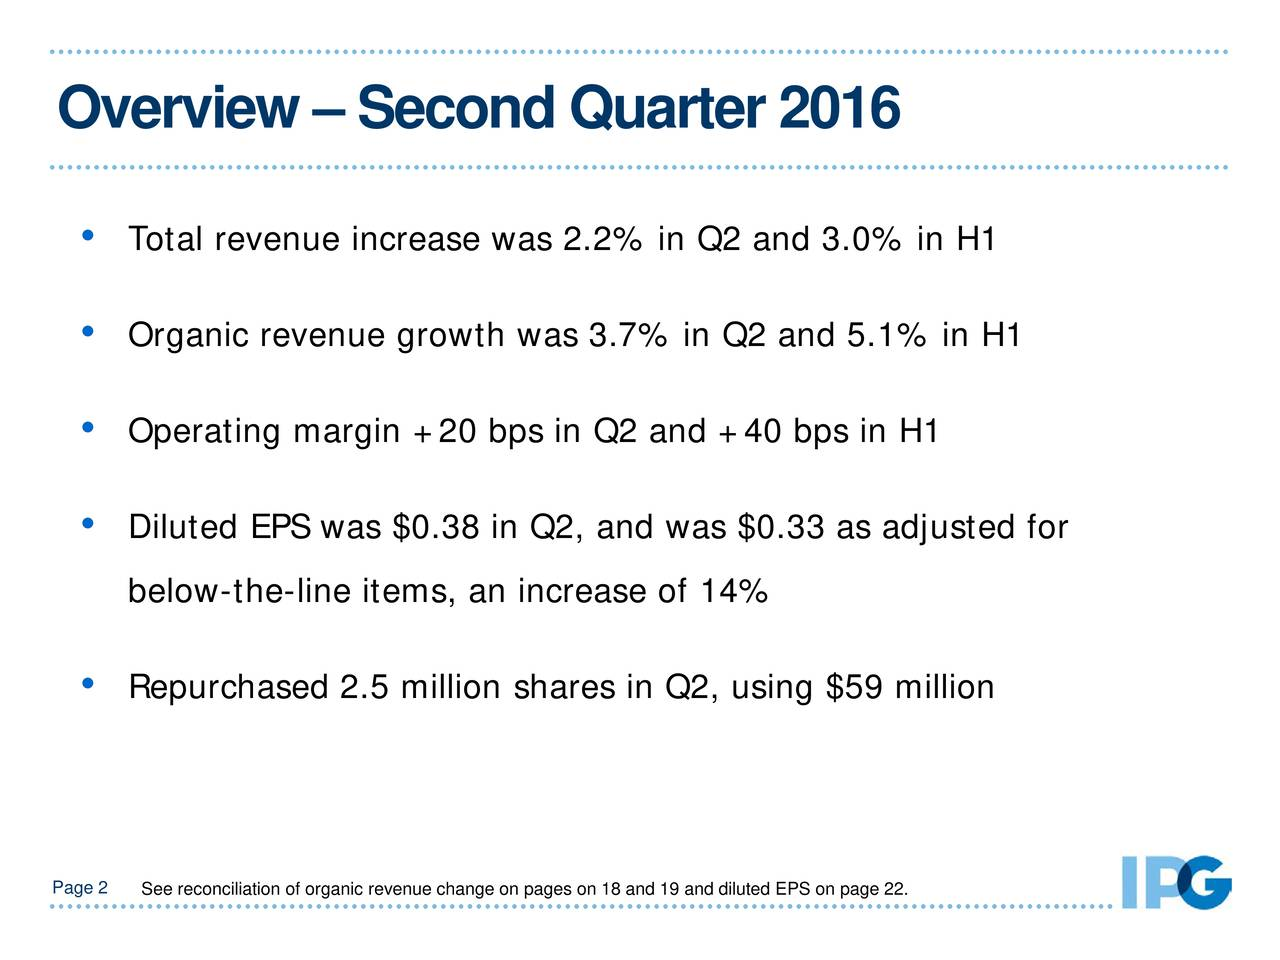 Total revenue increase was 2.2% in Q2 and 3.0% in H1 Organic revenue growth was 3.7% in Q2 and 5.1% in H1 Operating margin +20 bps in Q2 and +40 bps in H1 Diluted EPS was $0.38 in Q2, and was $0.33 as adjusted for below-the-line items, an increase of 14% Repurchased 2.5 million shares in Q2, using $59 million Page See reconciliation of organic revenue change onpages on 18 and 19 and diluted EPS on page 22.